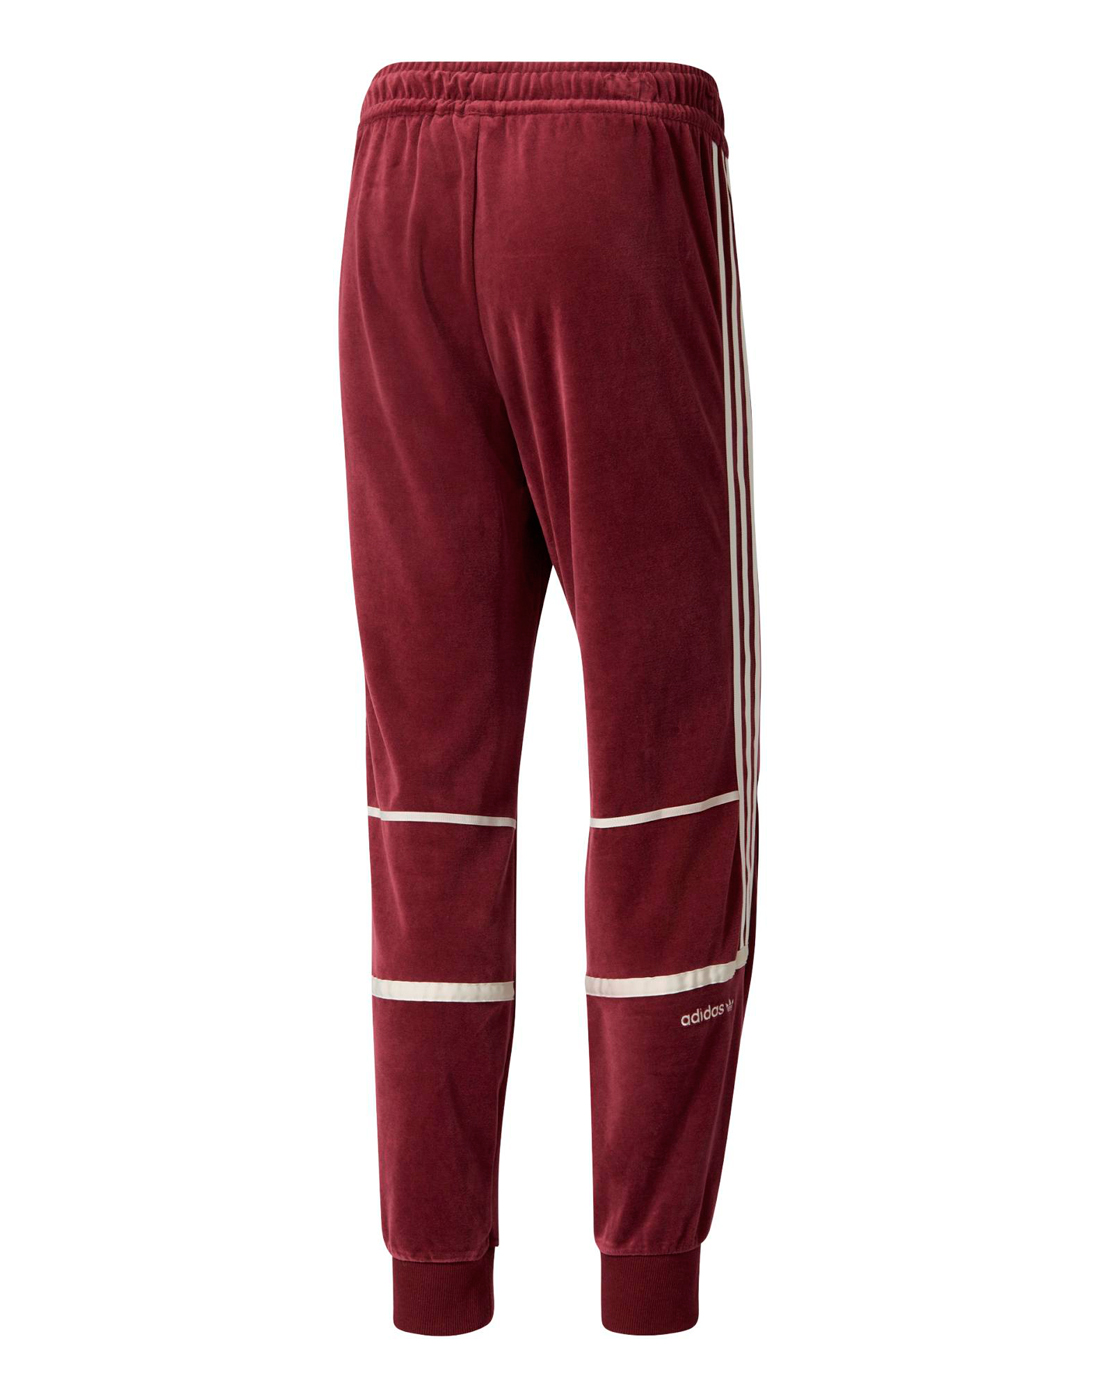 59d846a6be70 Mens Challenger Velour Track Pant · Mens Challenger Velour Track Pant